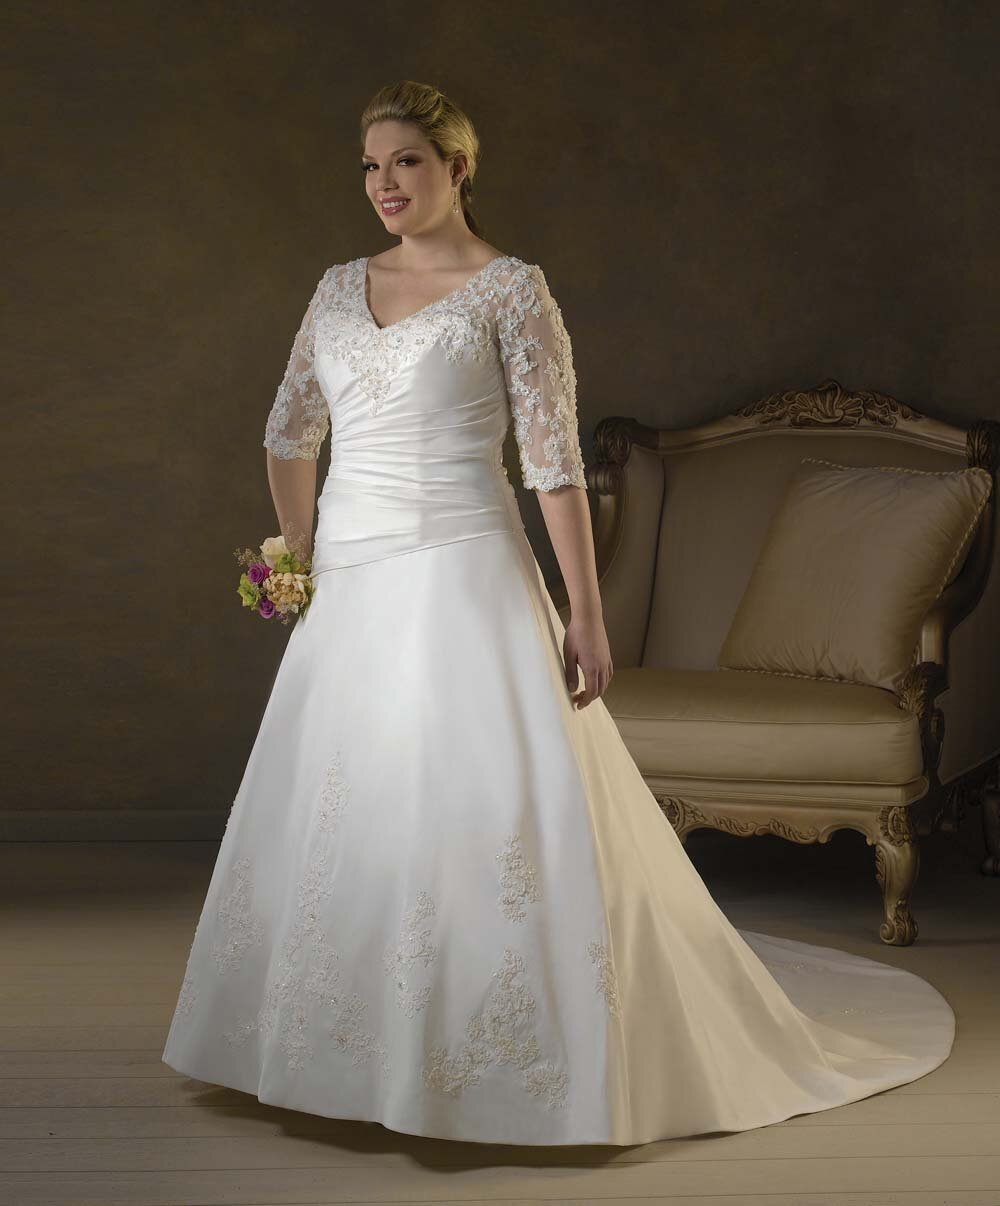 Stylish Wedding Gowns: Plus Size Retro Wedding Dresses: Pictures Ideas, Guide To